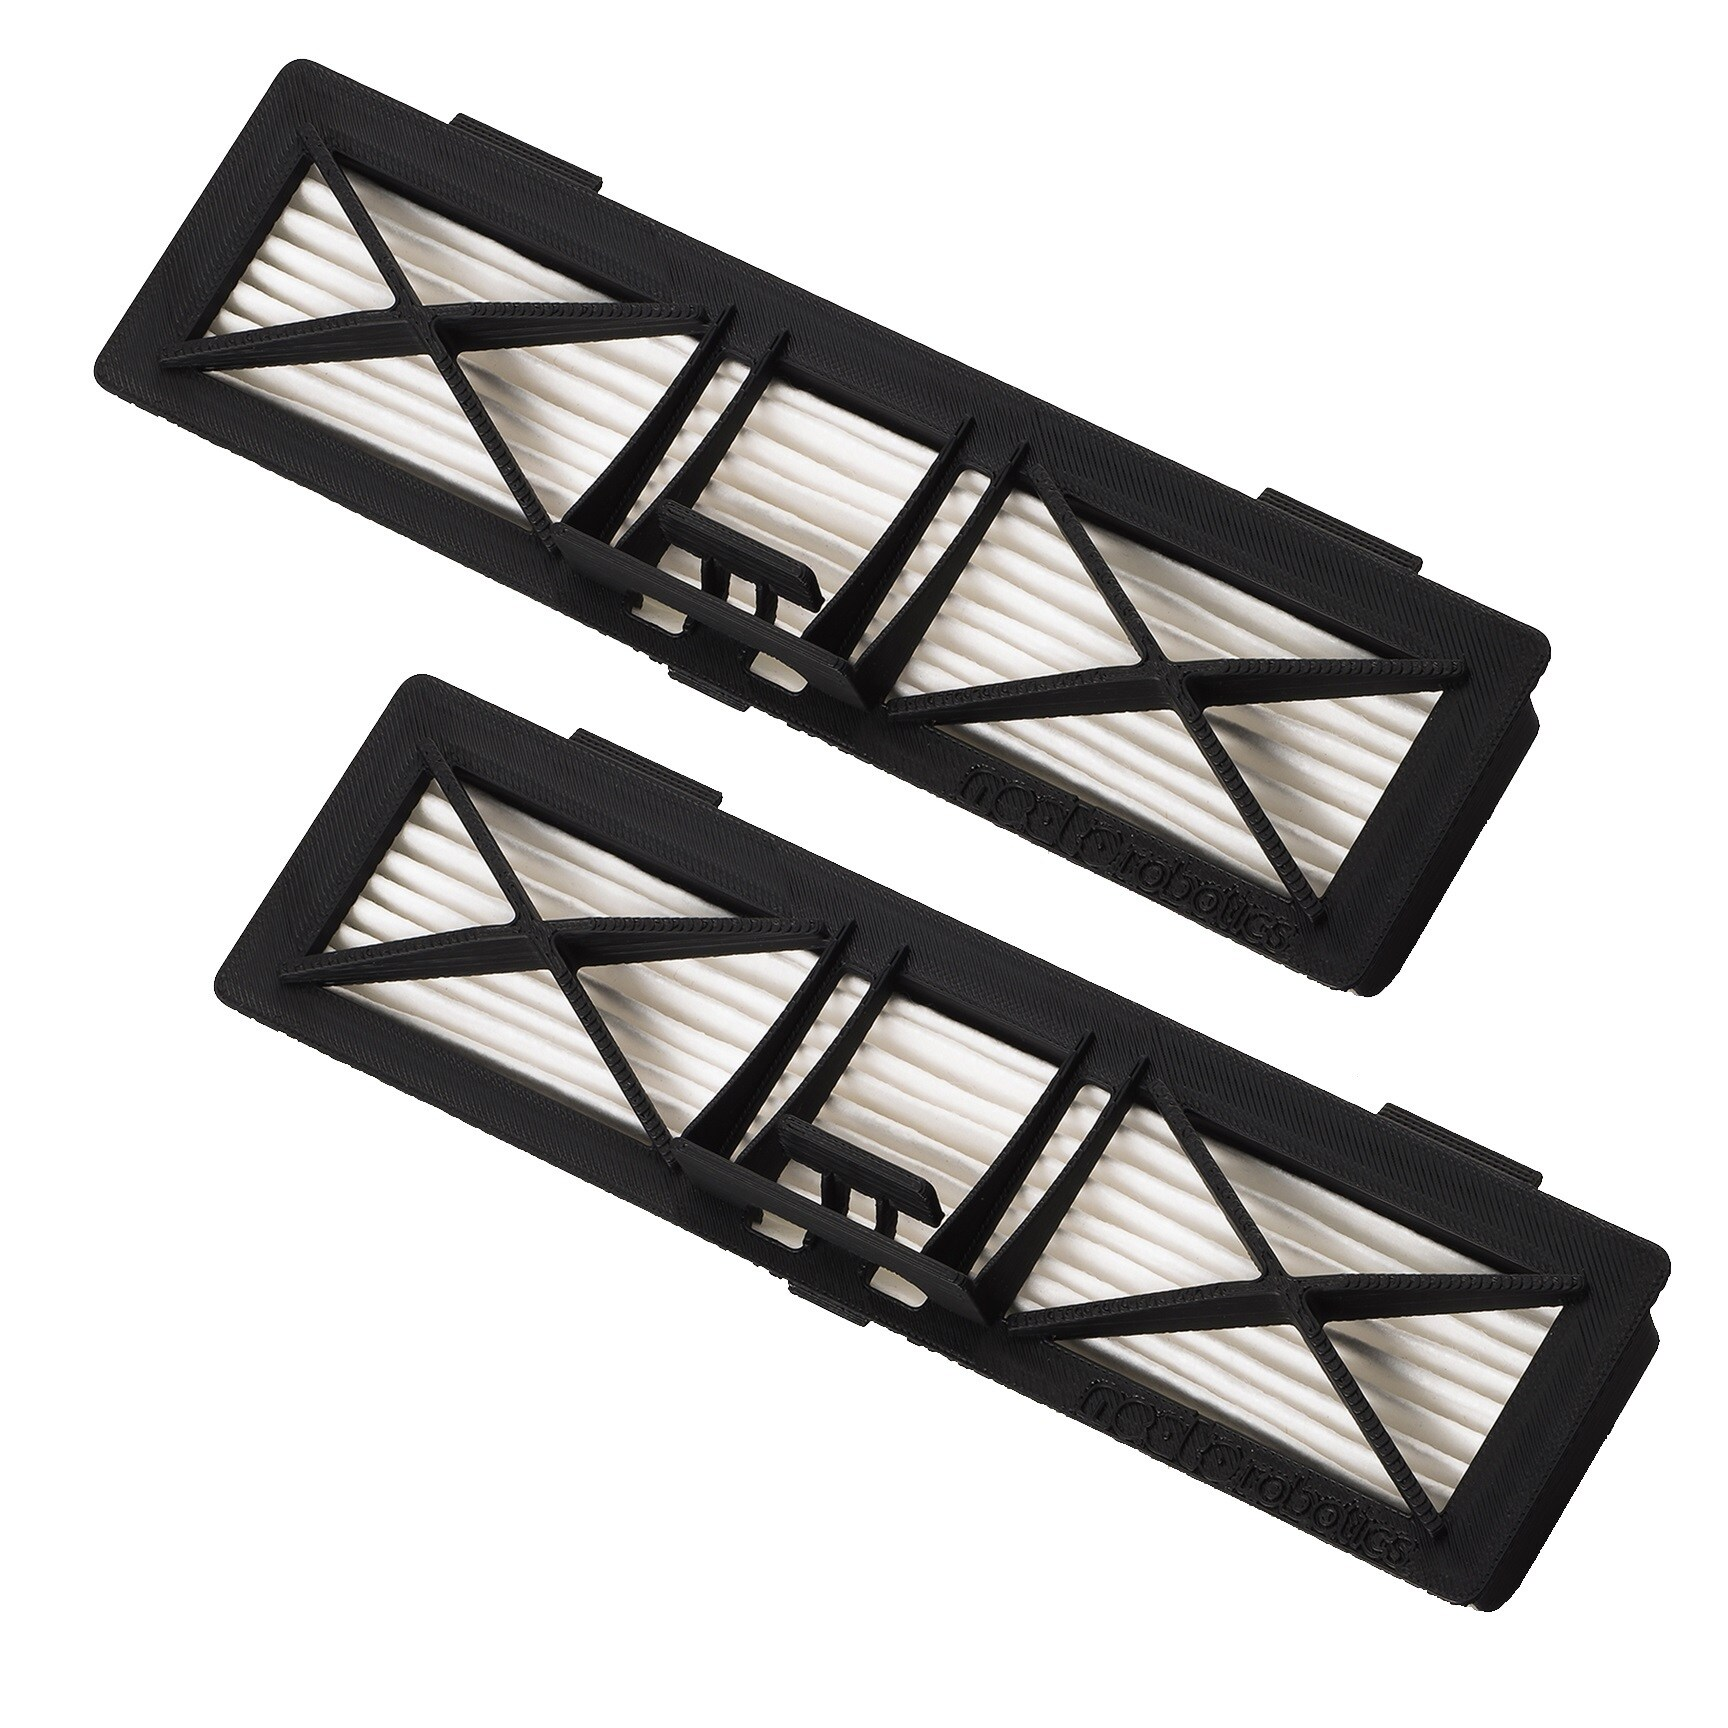 Neato Botvac Ultra Performance Filters, 2 Pack, Black